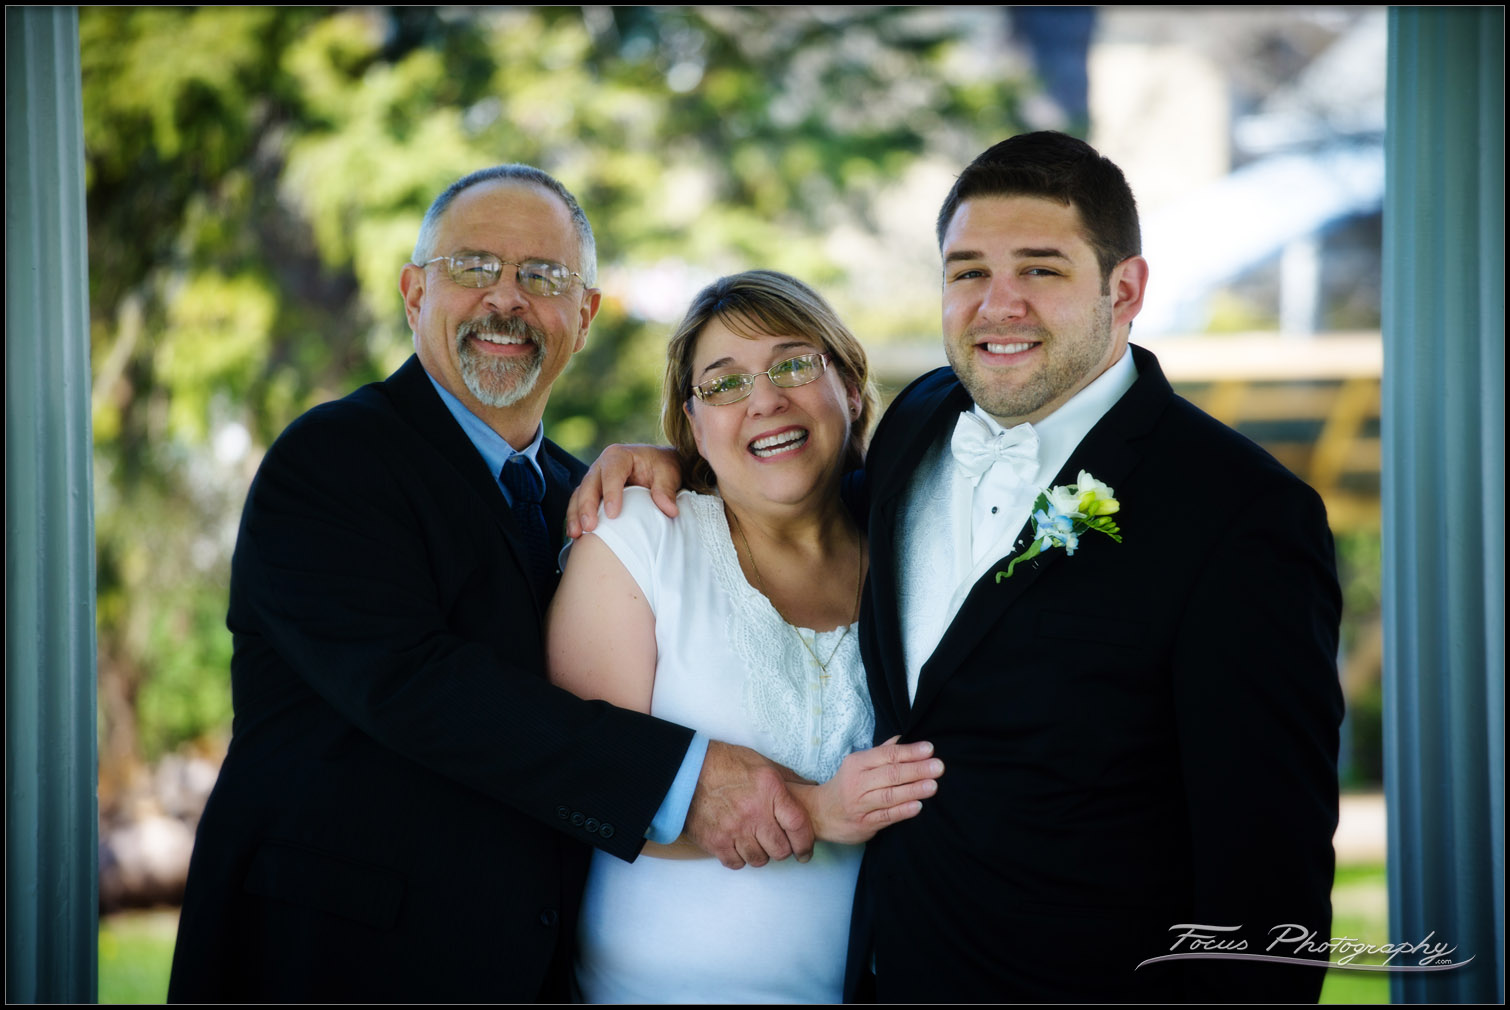 groom and family at Maine wedding - photographer Focus Photography